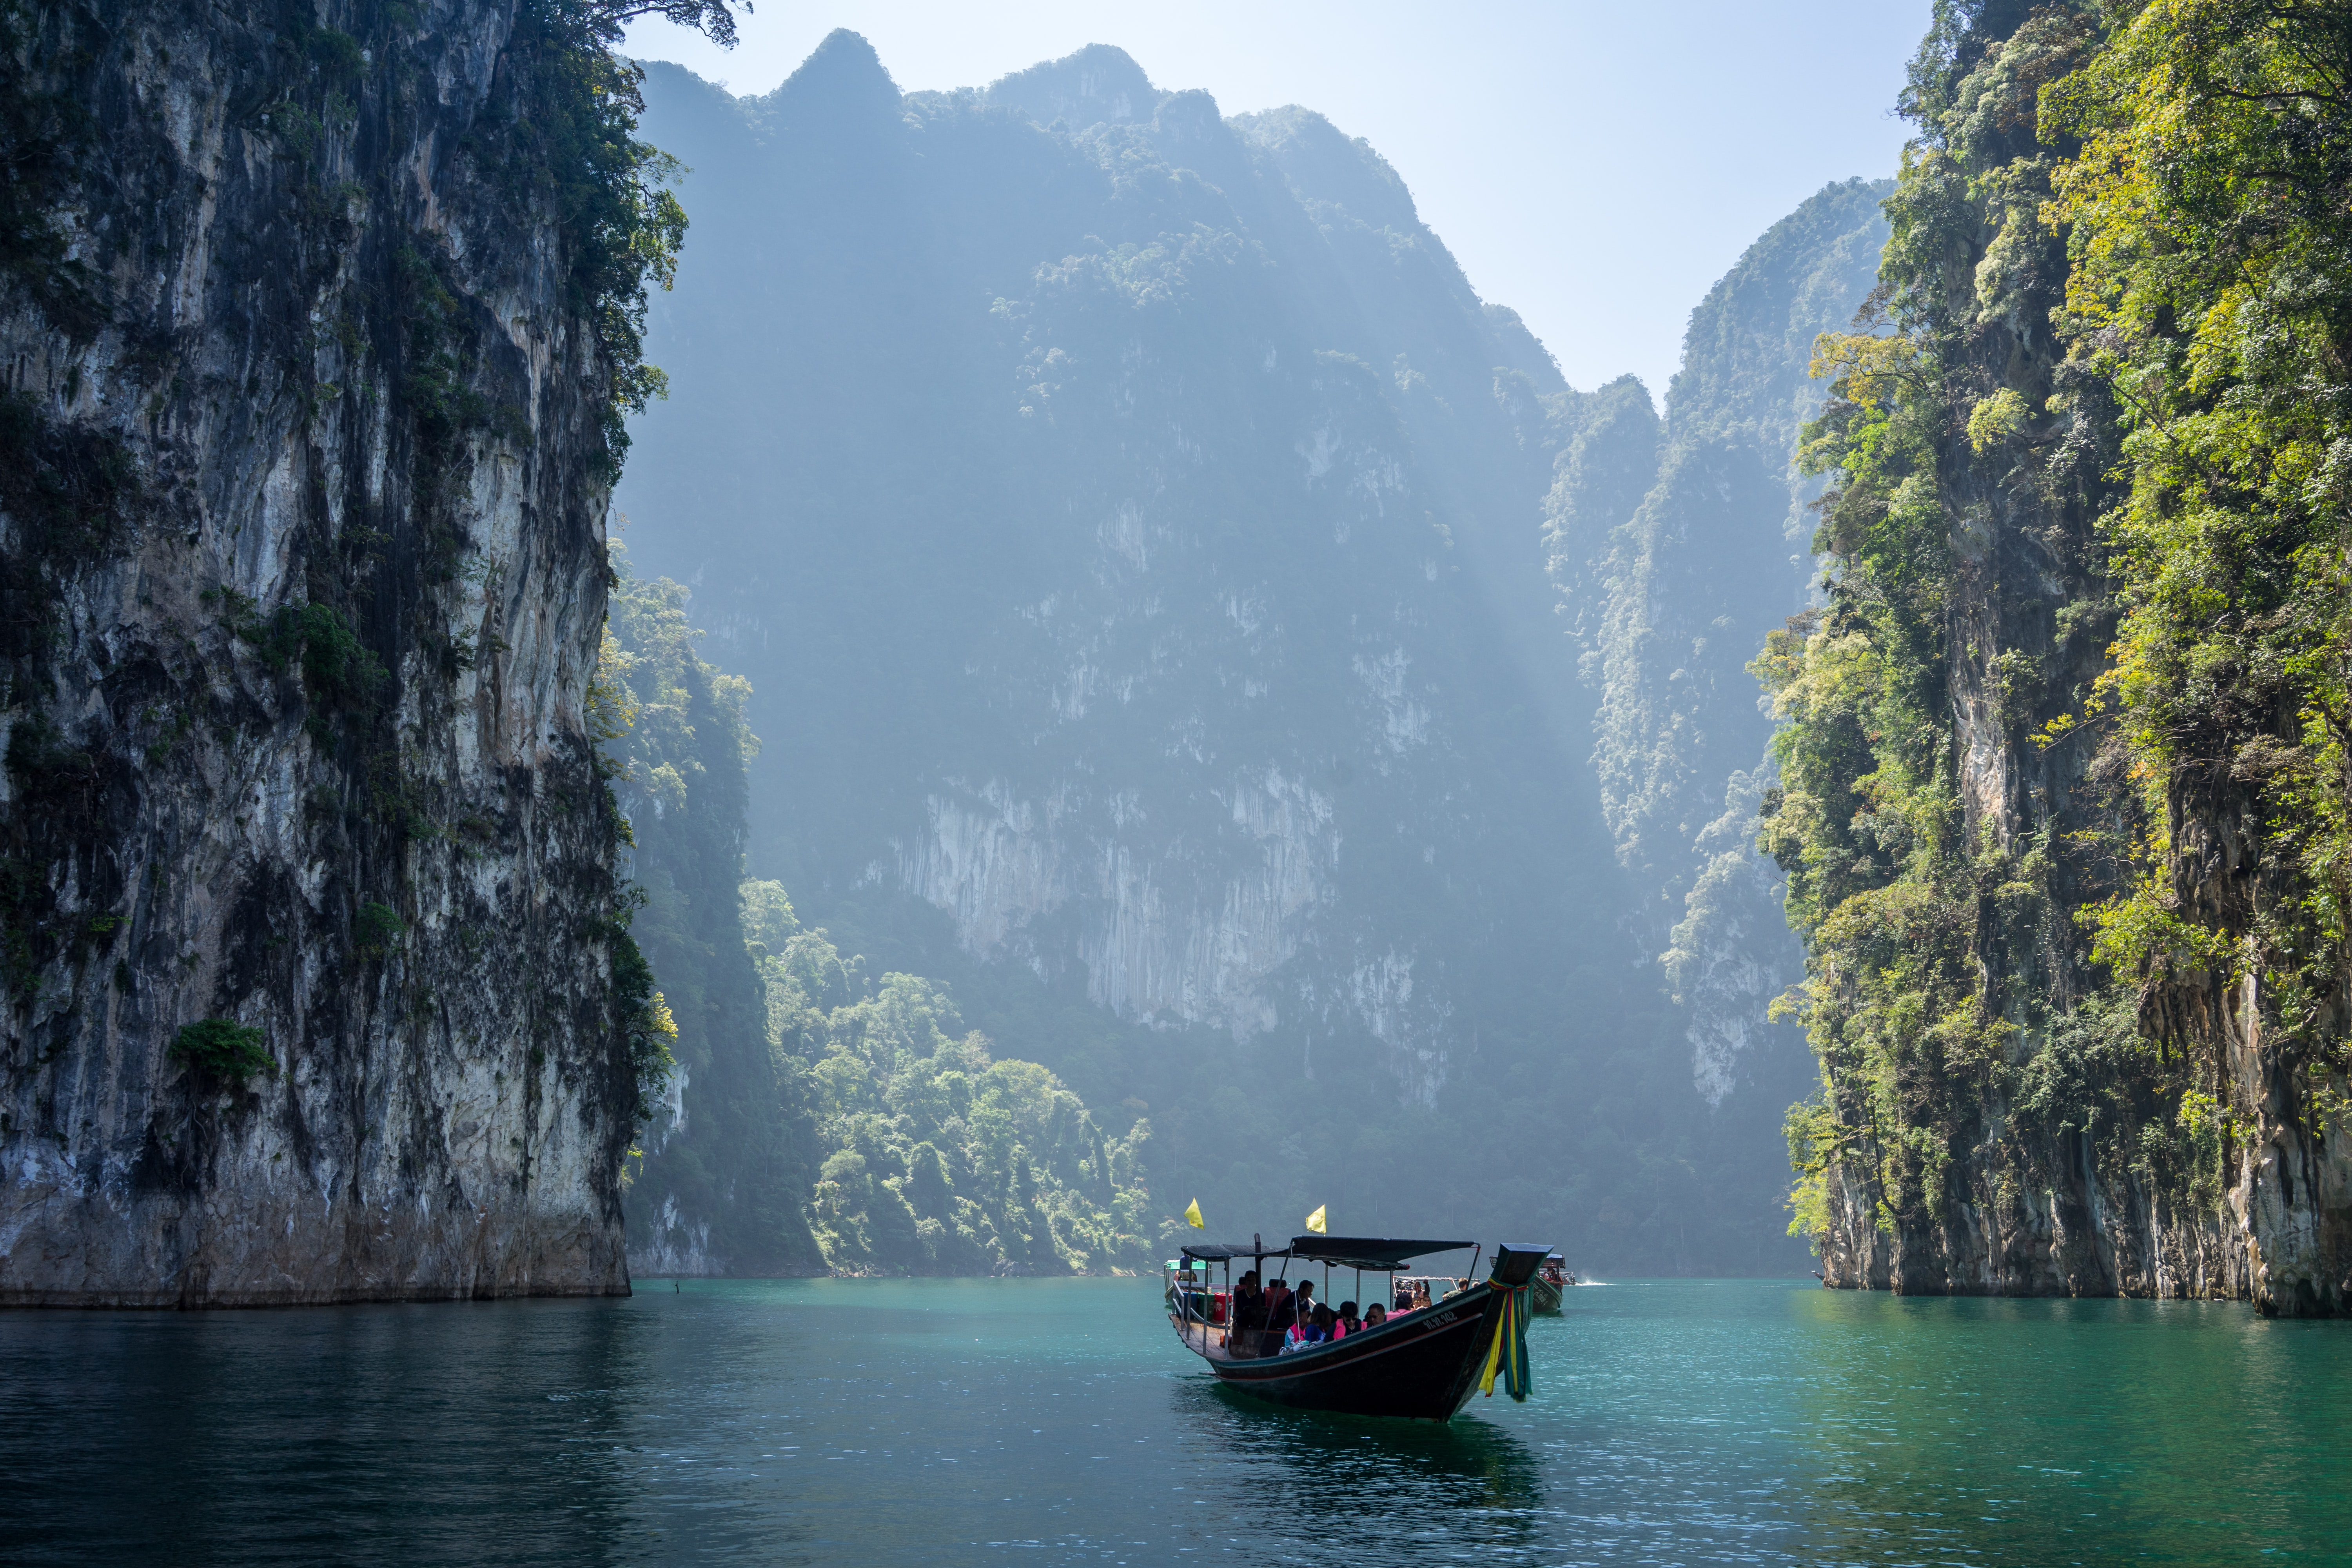 Cruising in Thailand waters